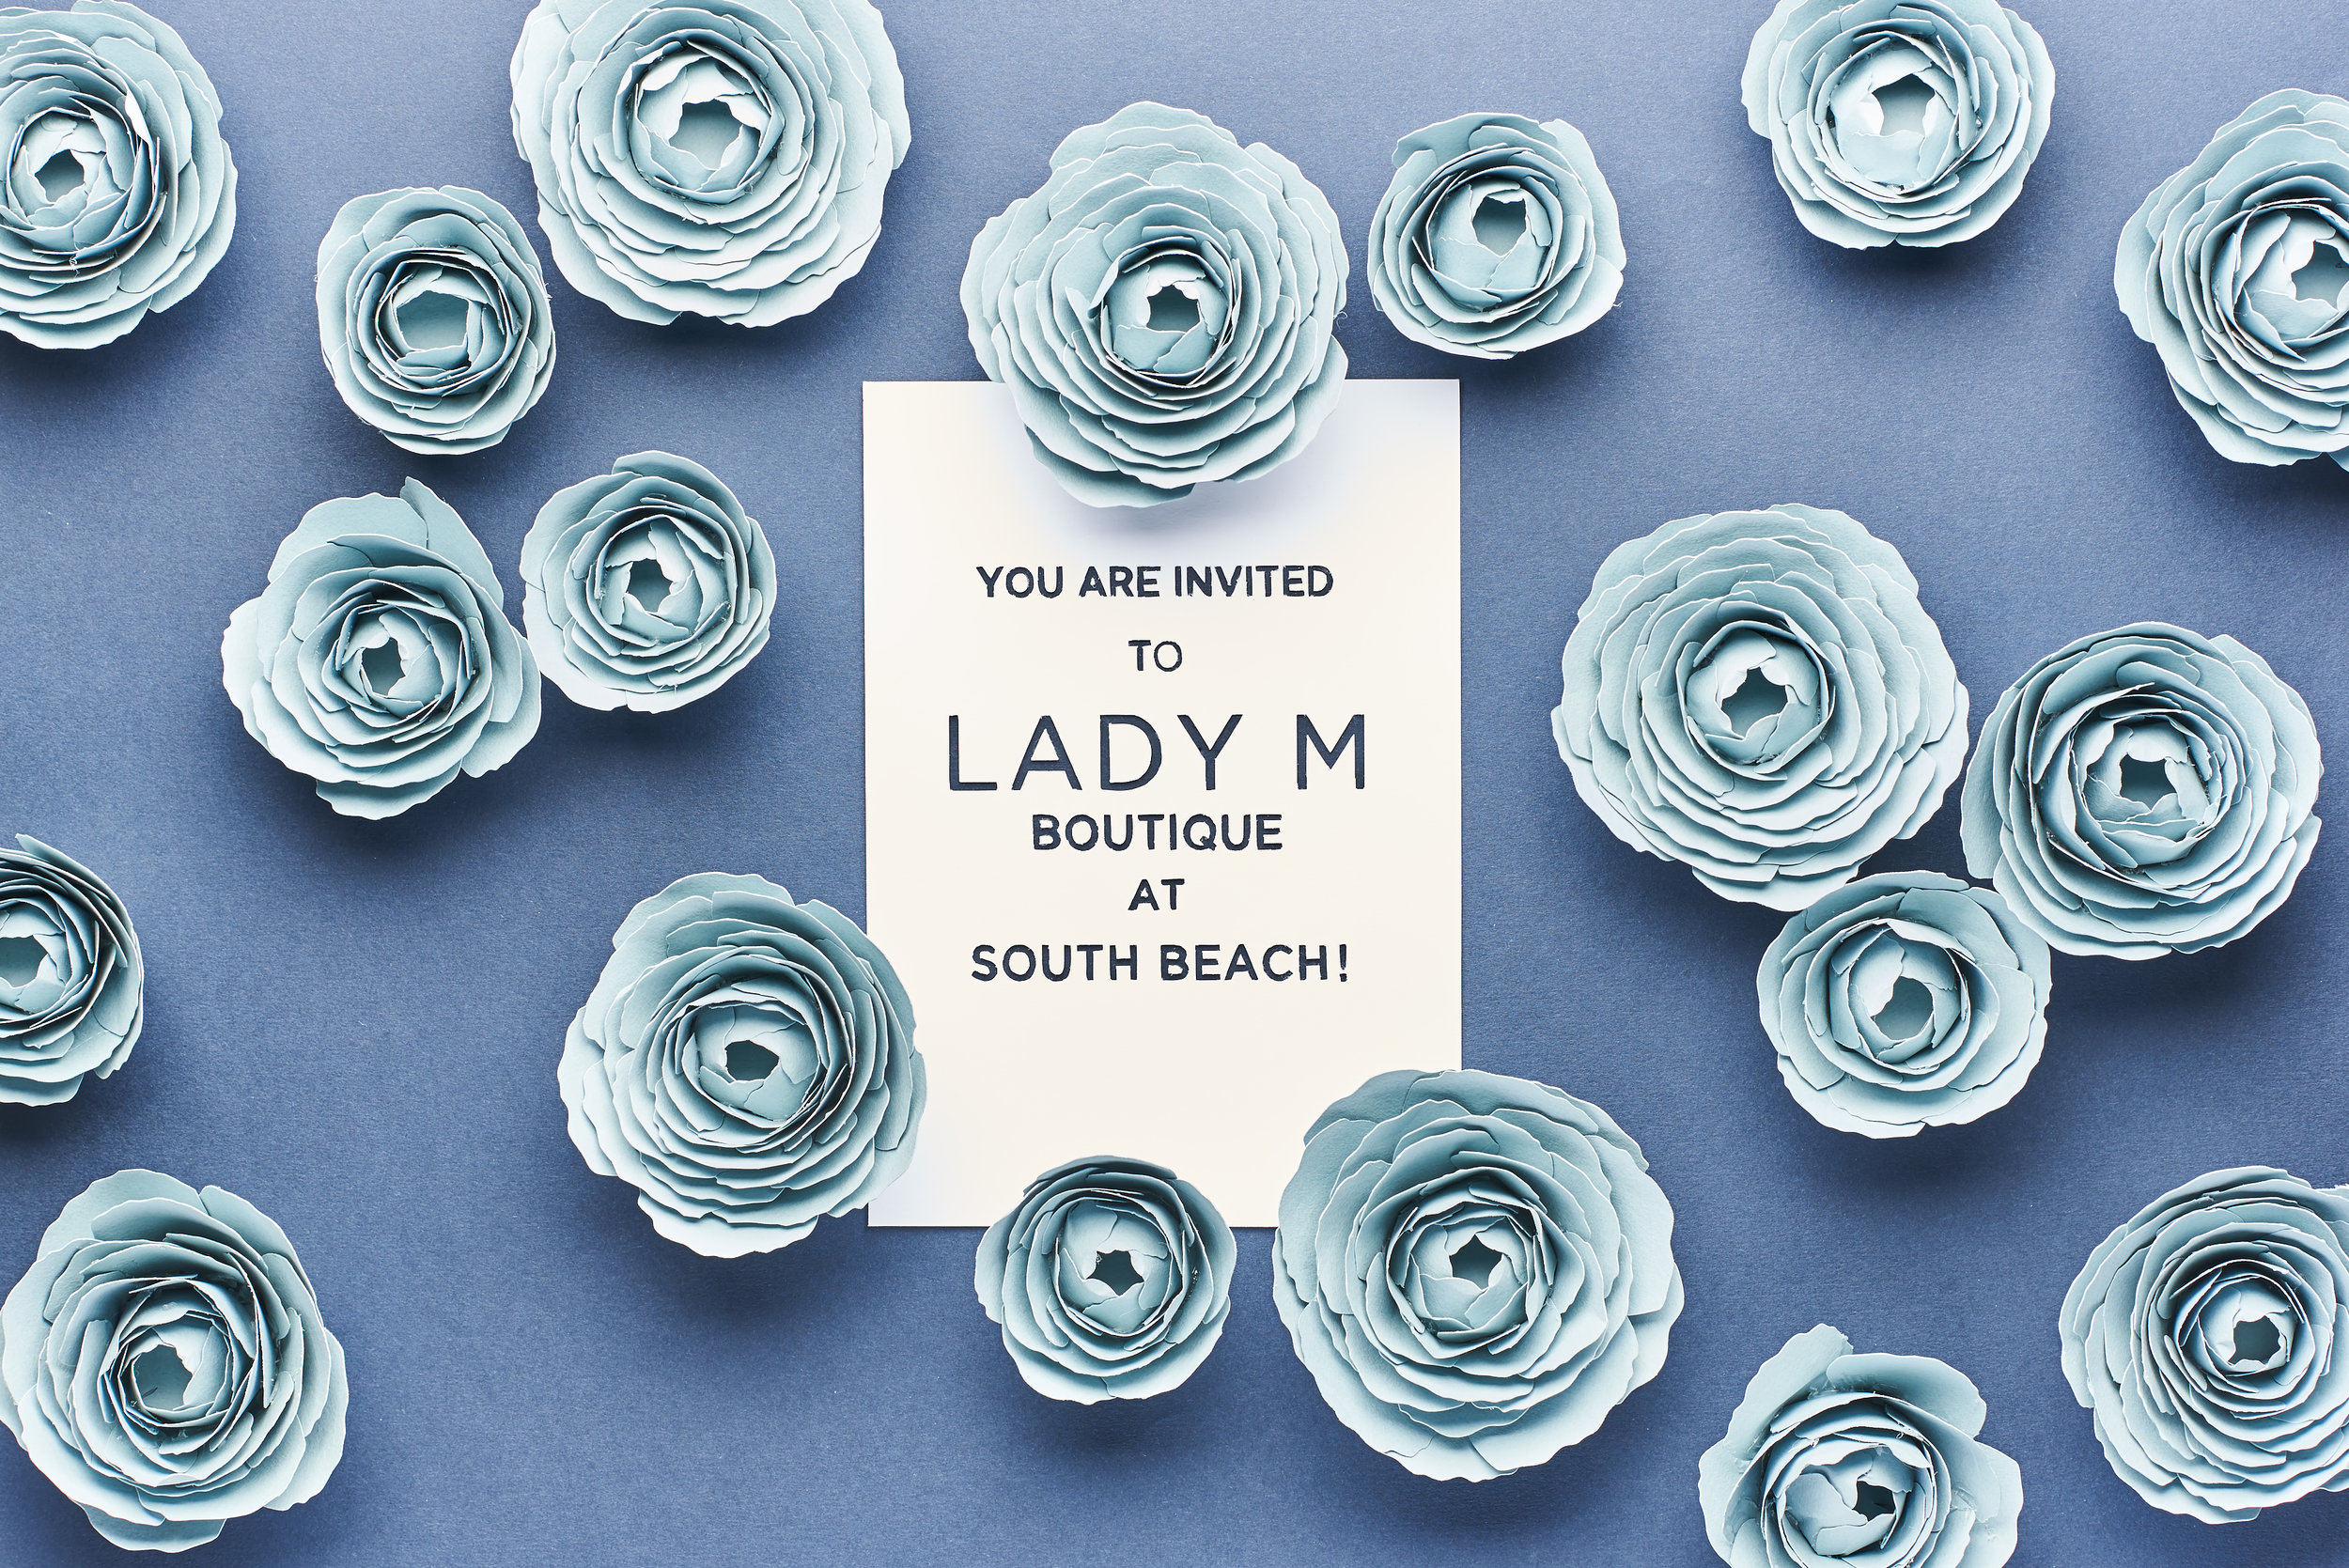 Invite for South Beach.jpg